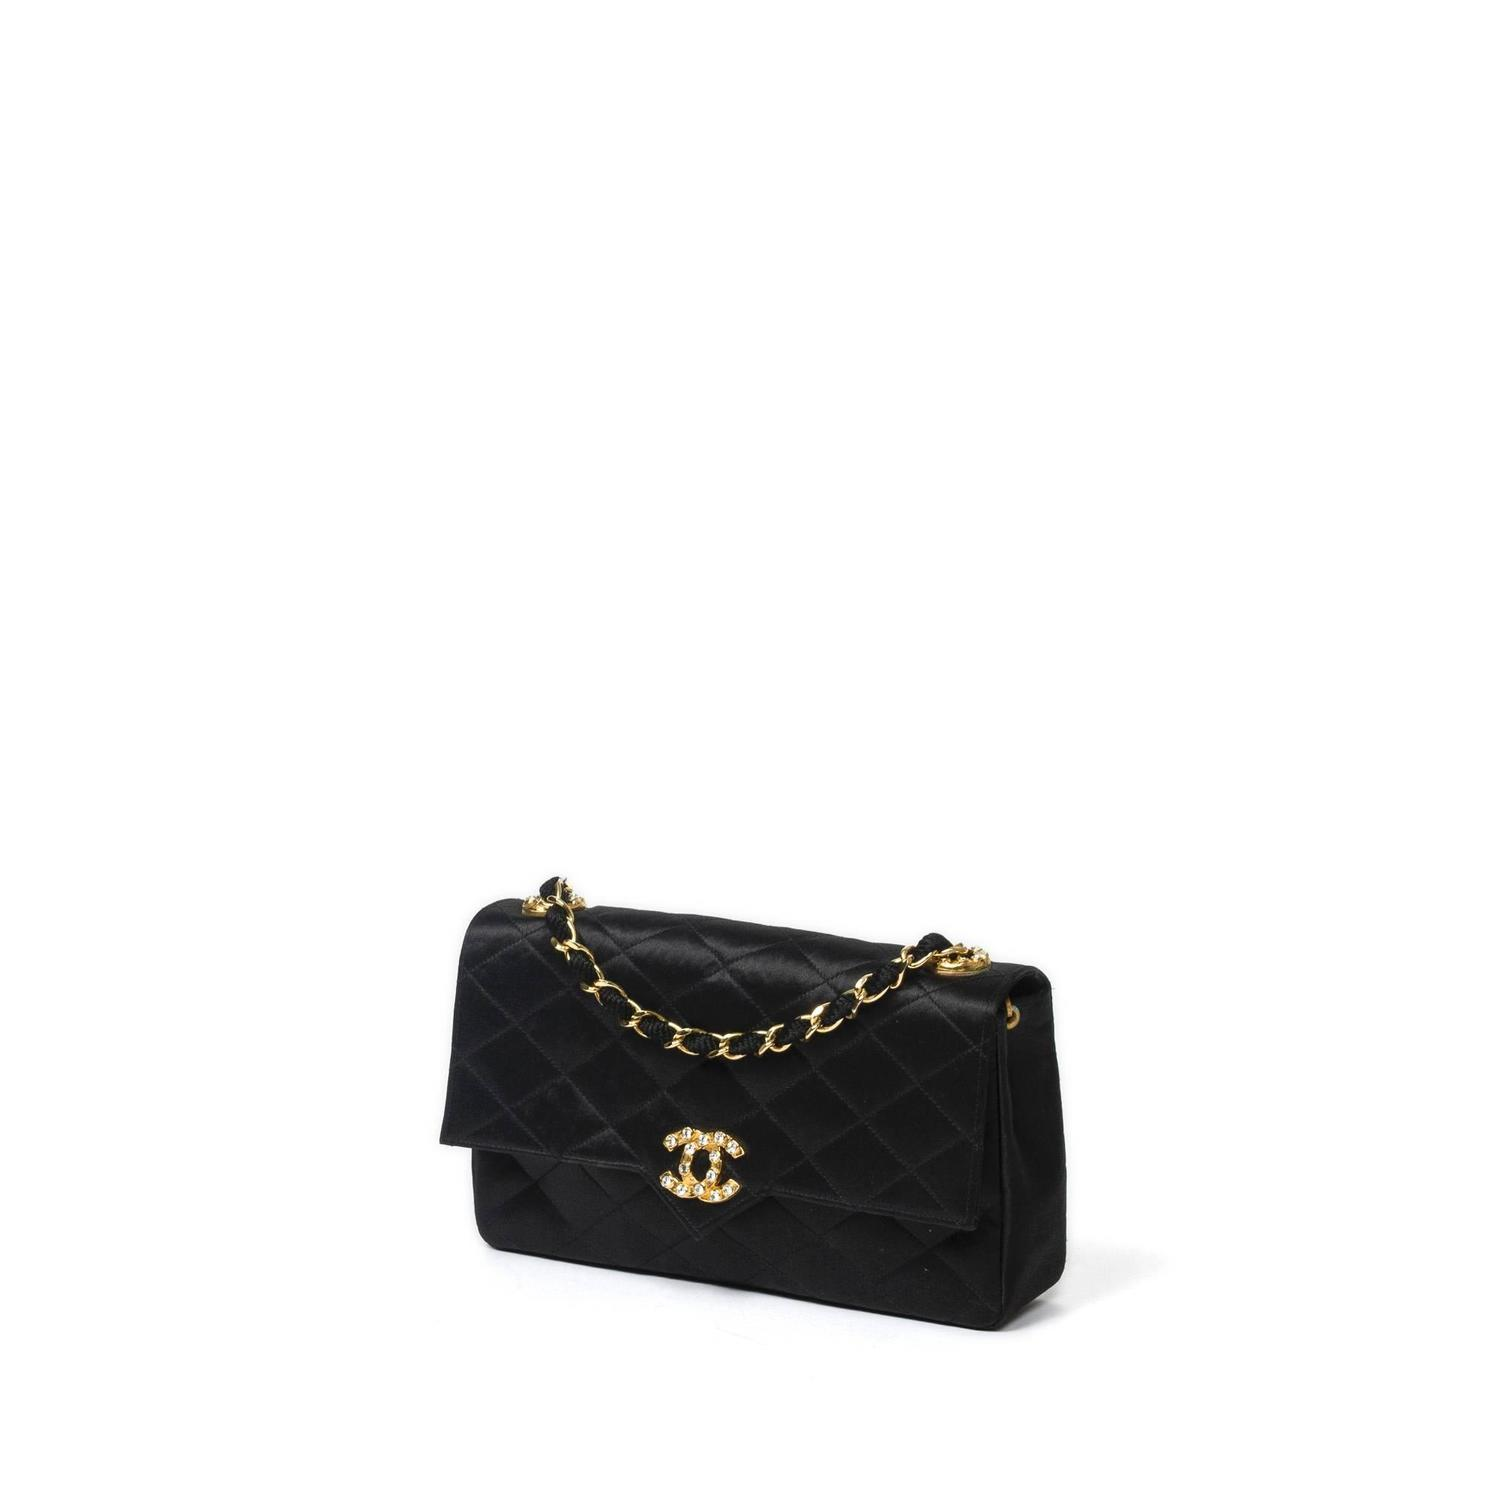 Chanel Vintage Strass Pouch 22cm Black Quilted Silk At 1stdibs